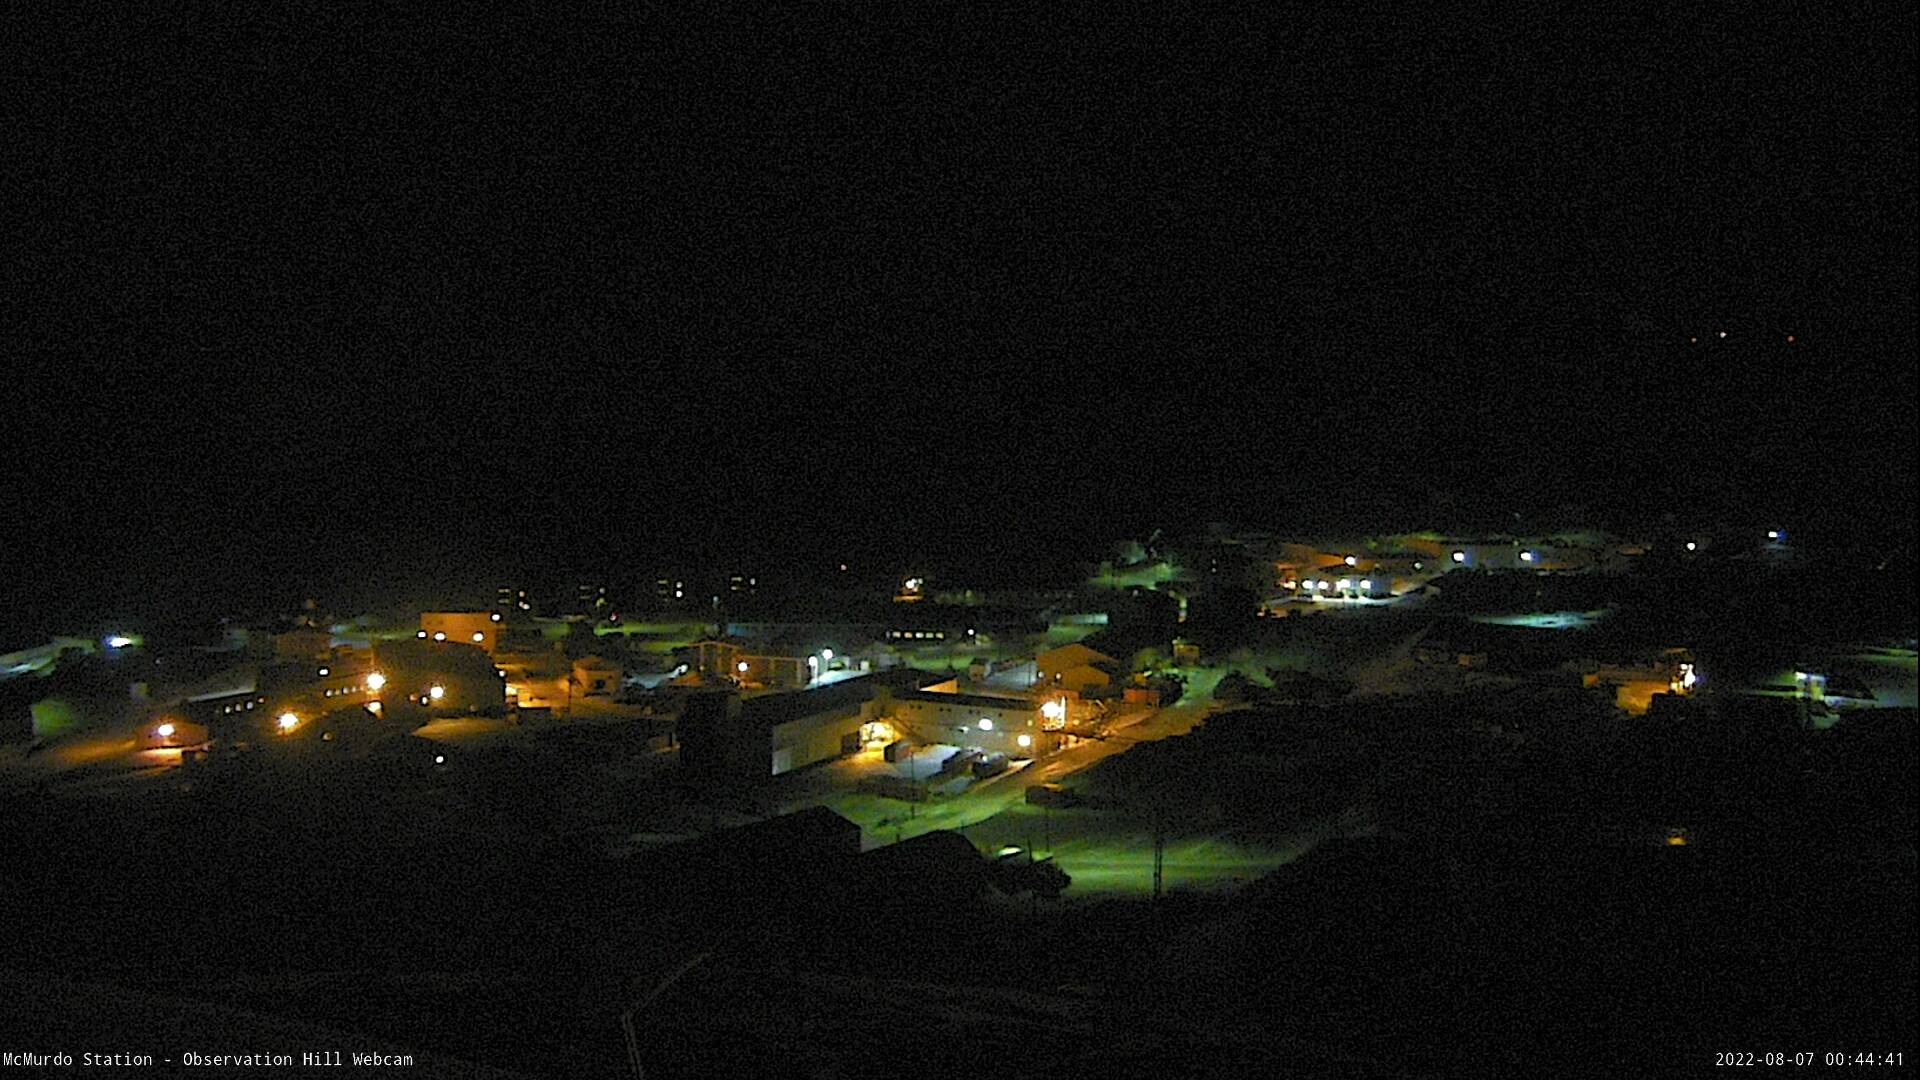 McMurdo Station - Observation Hill Webcam